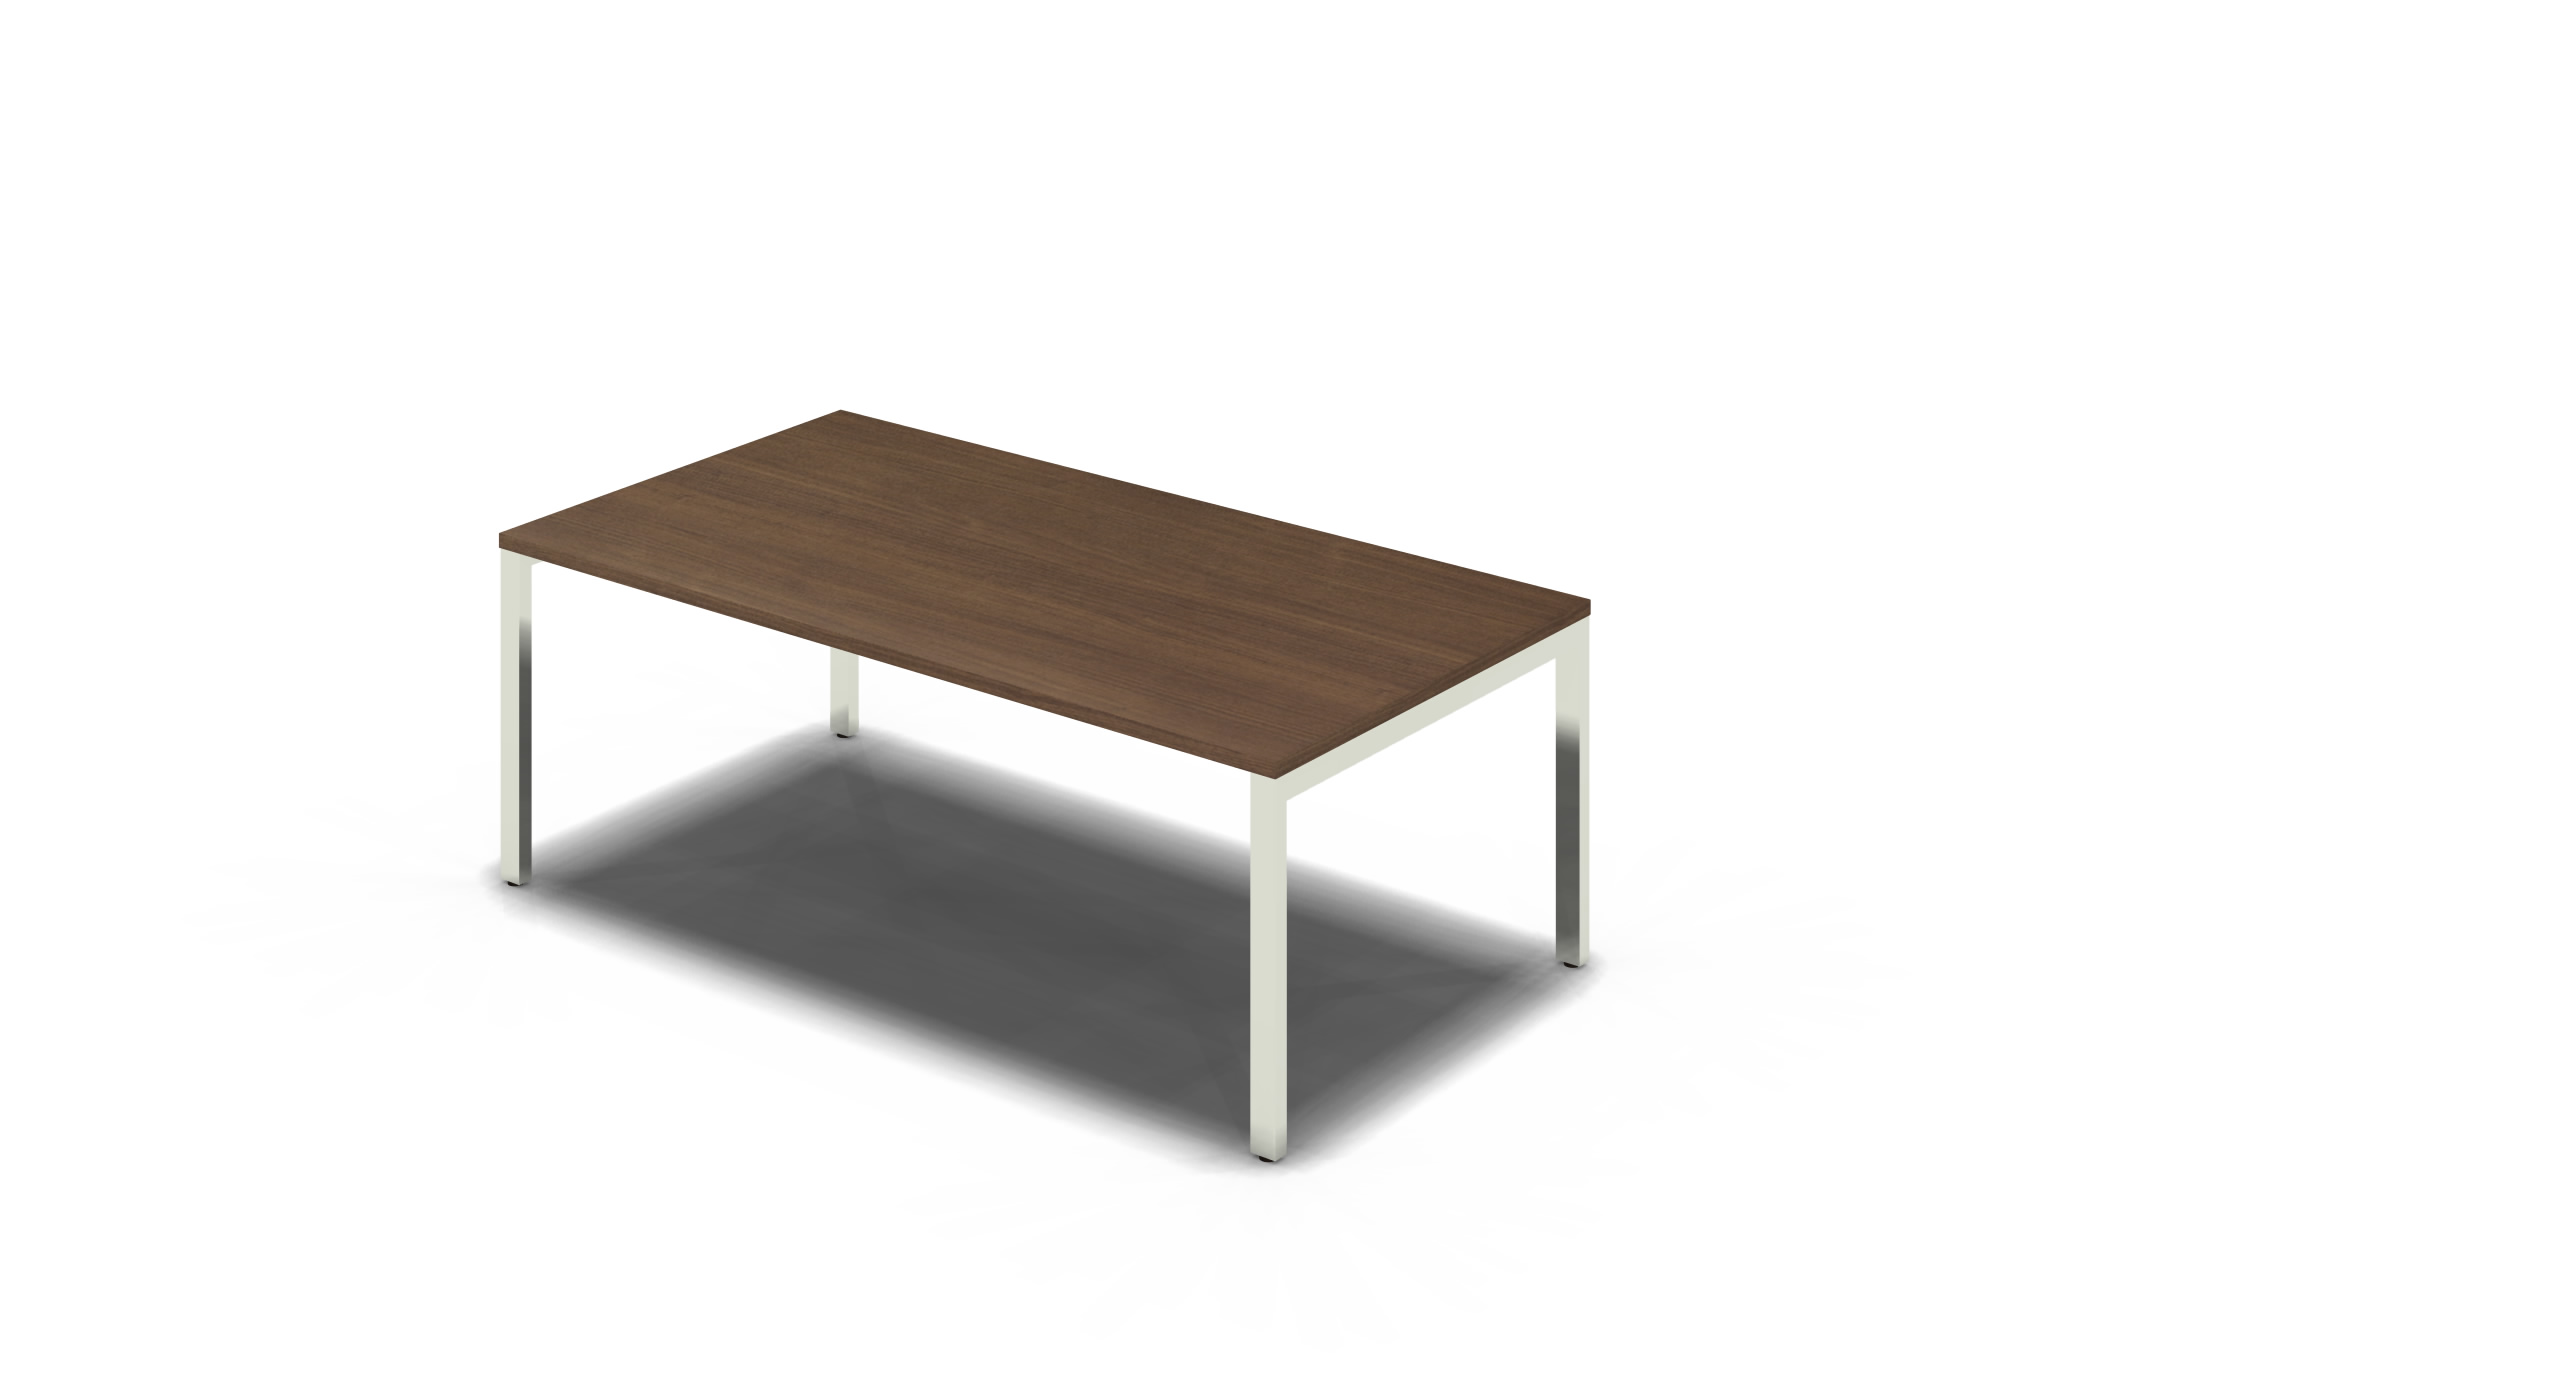 Table_Square_1800x900_Chrome_Walnut_noOption